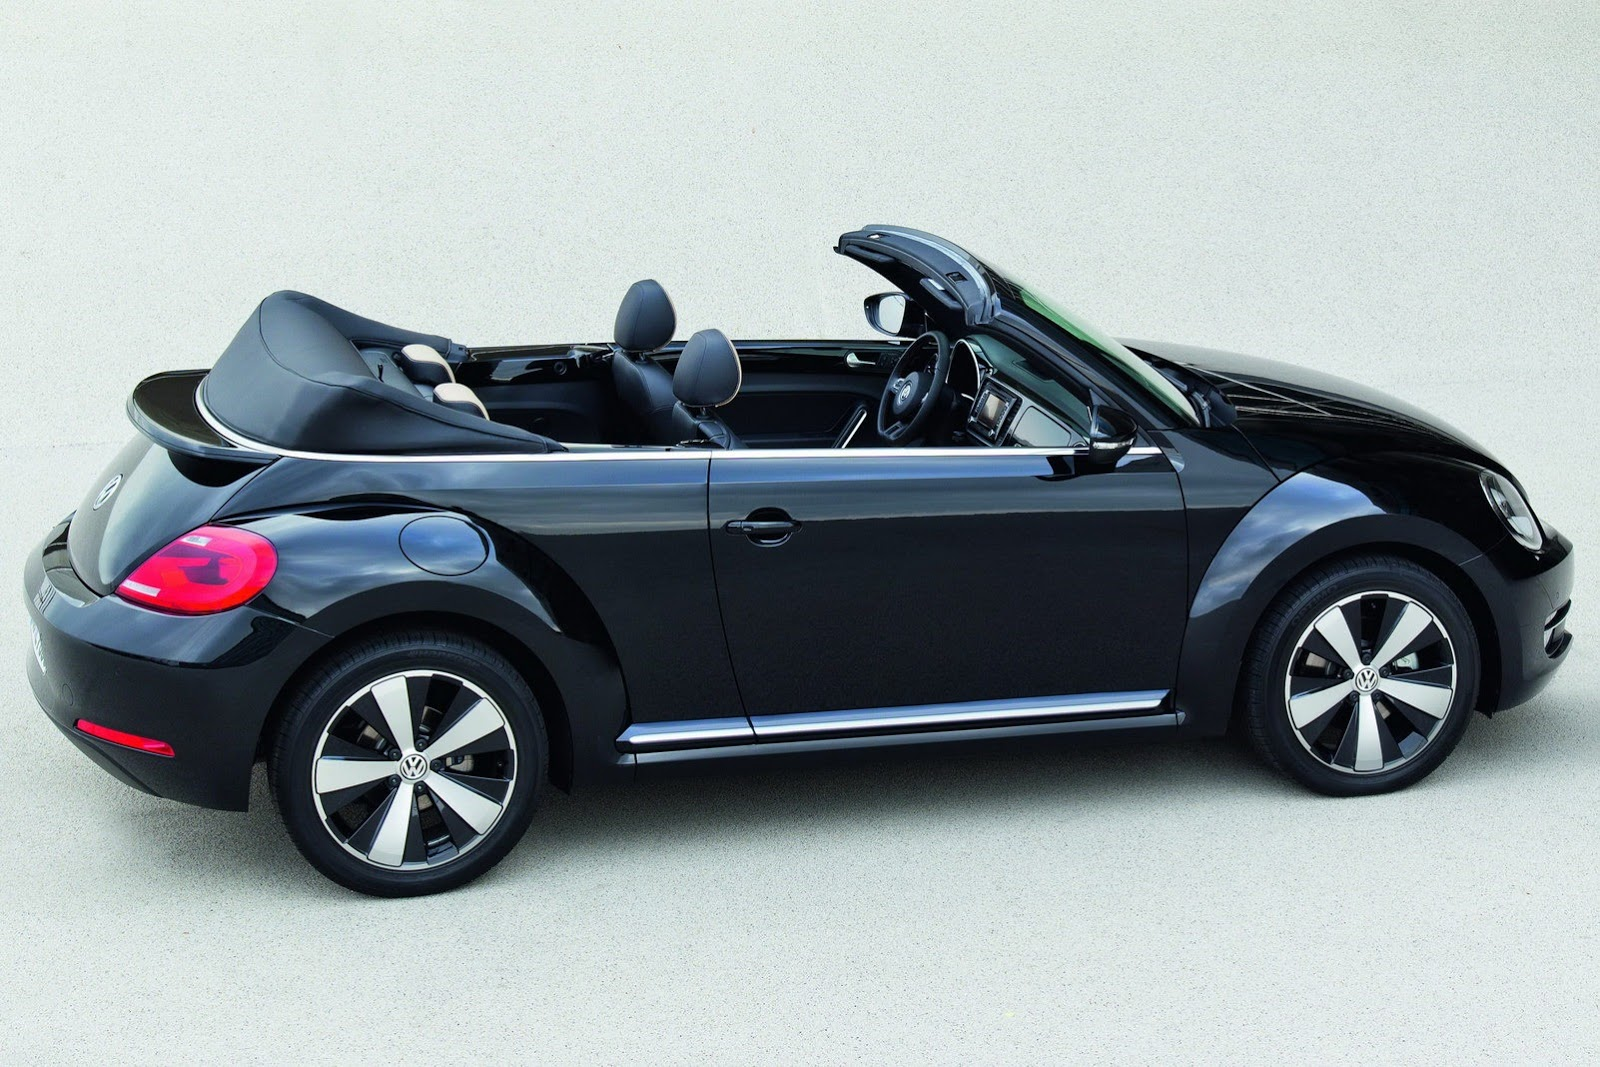 2013 vw beetle coupe and cabriolet exclusive editions autoevolution. Black Bedroom Furniture Sets. Home Design Ideas